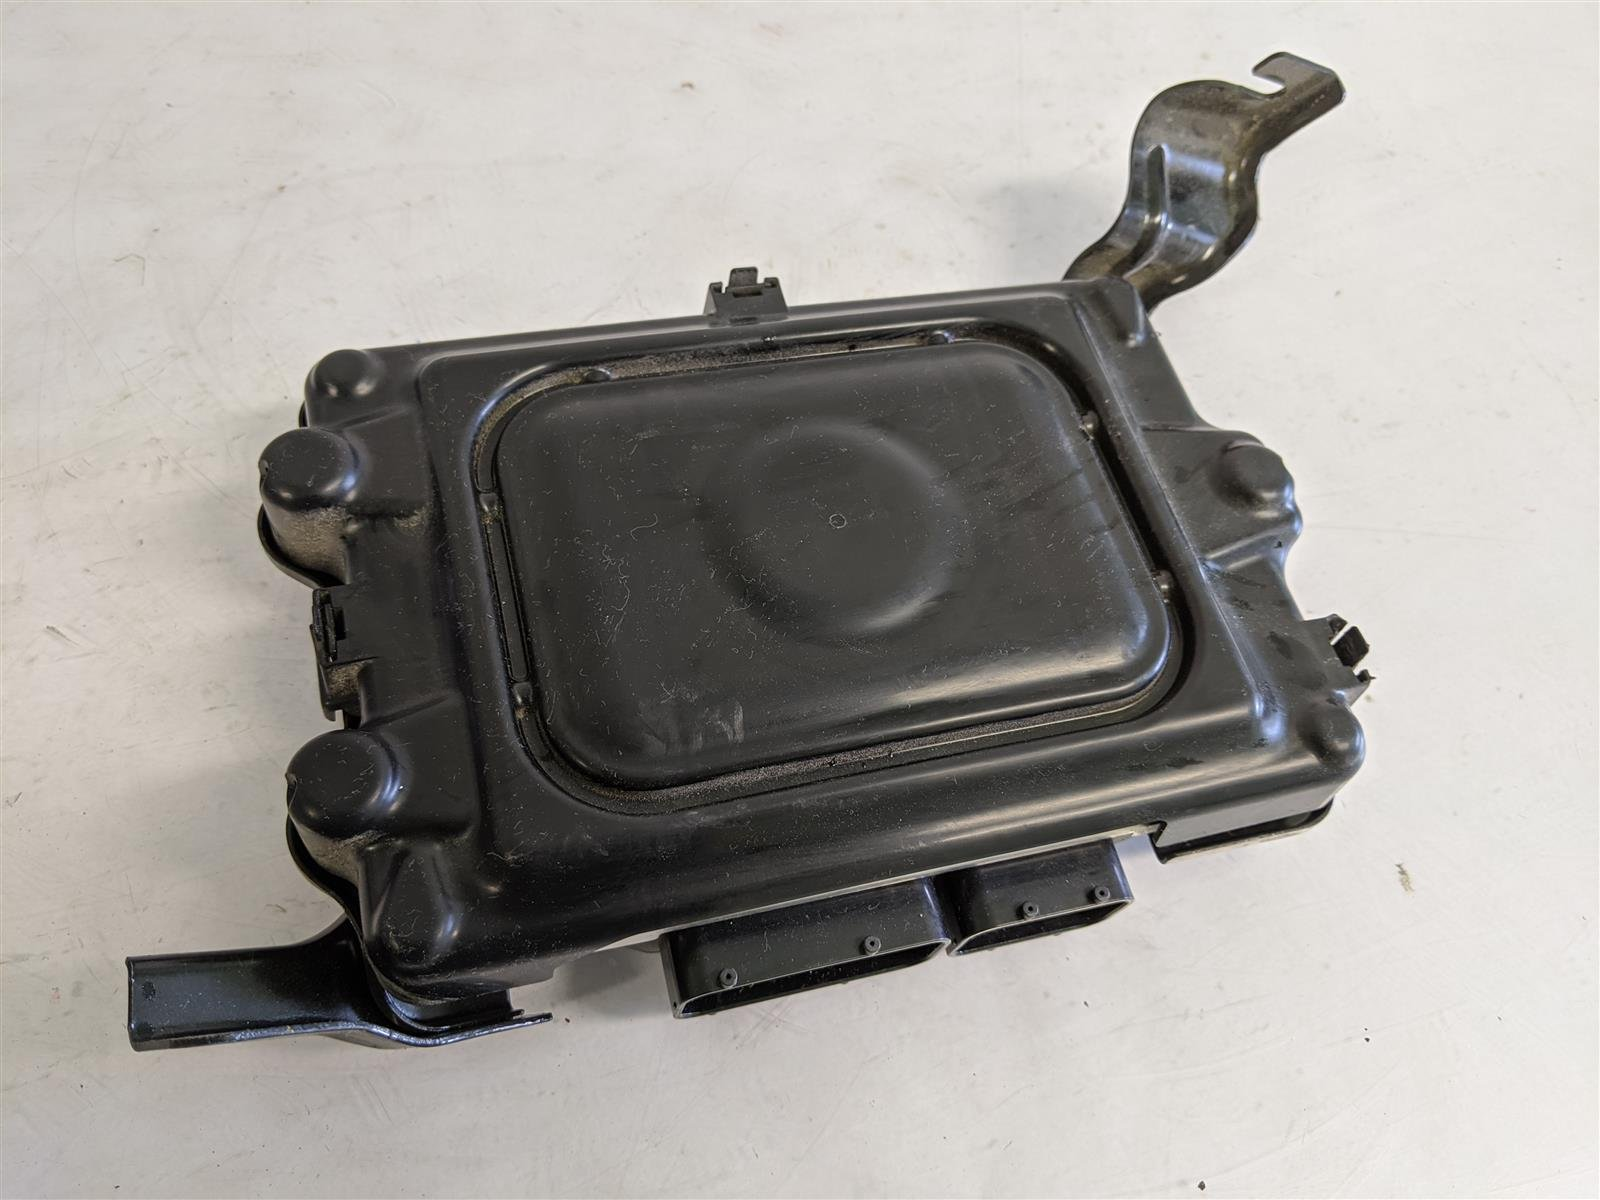 2018 Honda Civic Si Ecu Control Unit Replacement